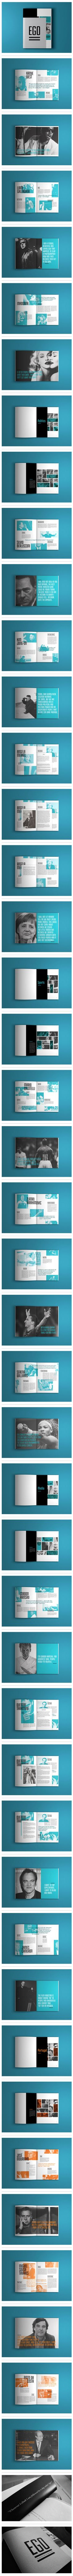 Layout Design photos in colours and black and white, text overlapping images Web Design, Page Layout Design, Magazine Layout Design, Book Layout, Graphic Design Layouts, Graphic Design Typography, Graphic Design Inspiration, Magazine Layouts, Design Brochure